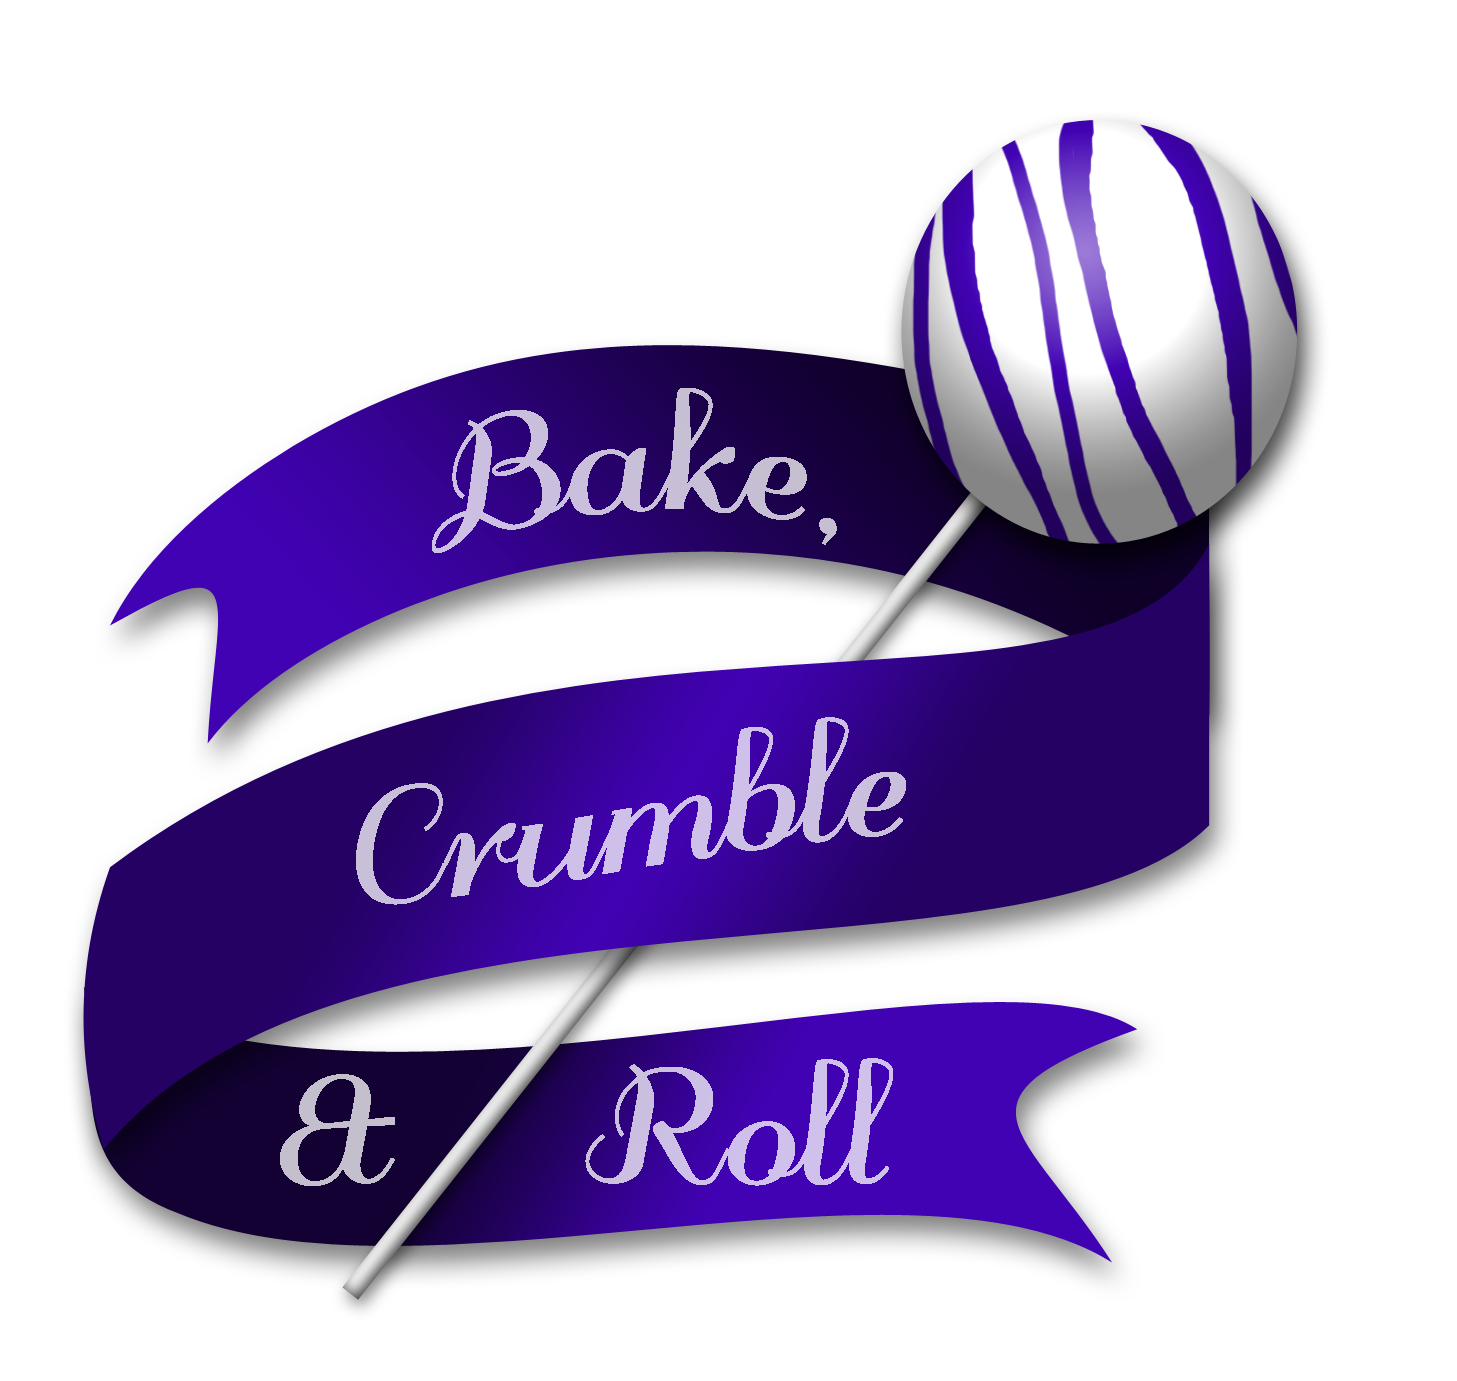 Bake, Crumble & Roll logo